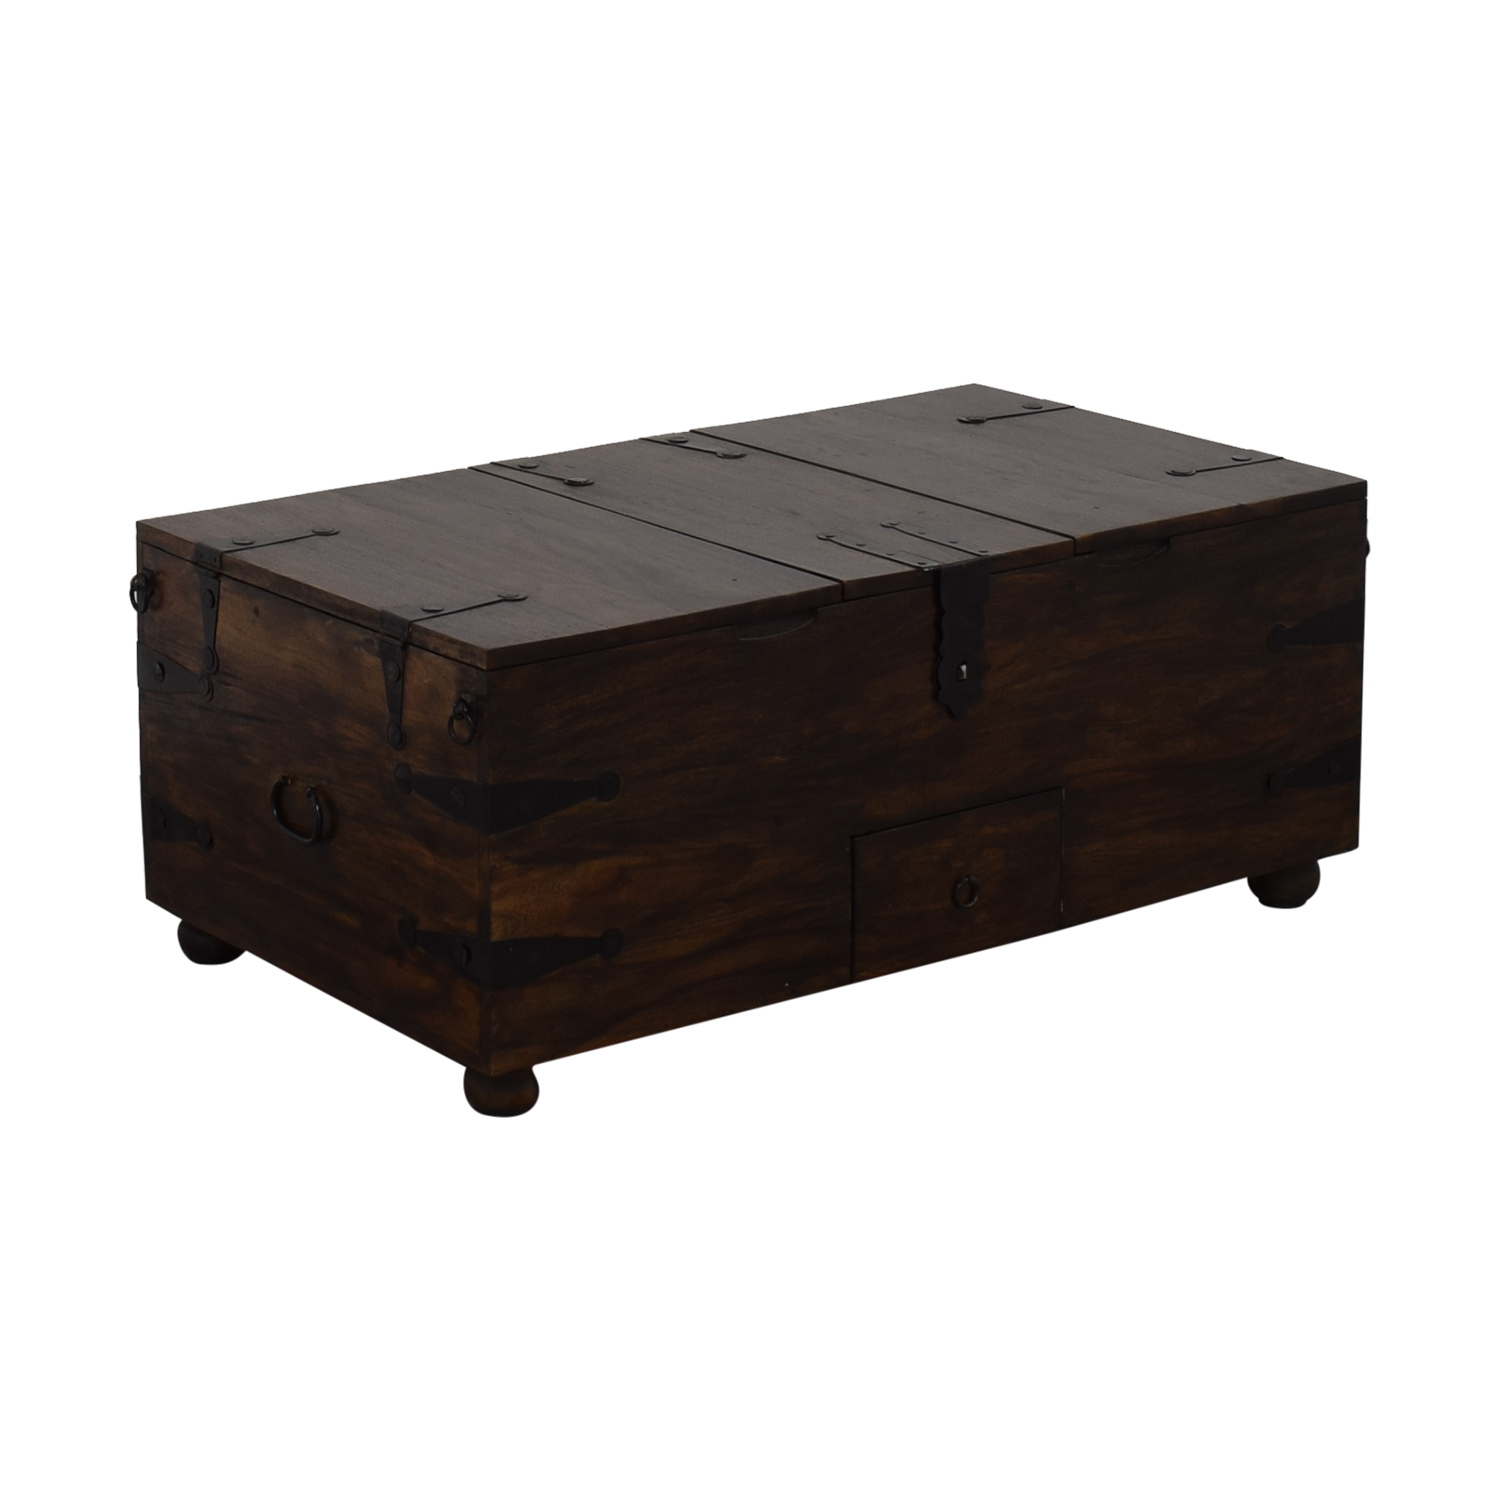 Crate & Barrel Rectangular Trunk or Coffee Table Crate & Barrel